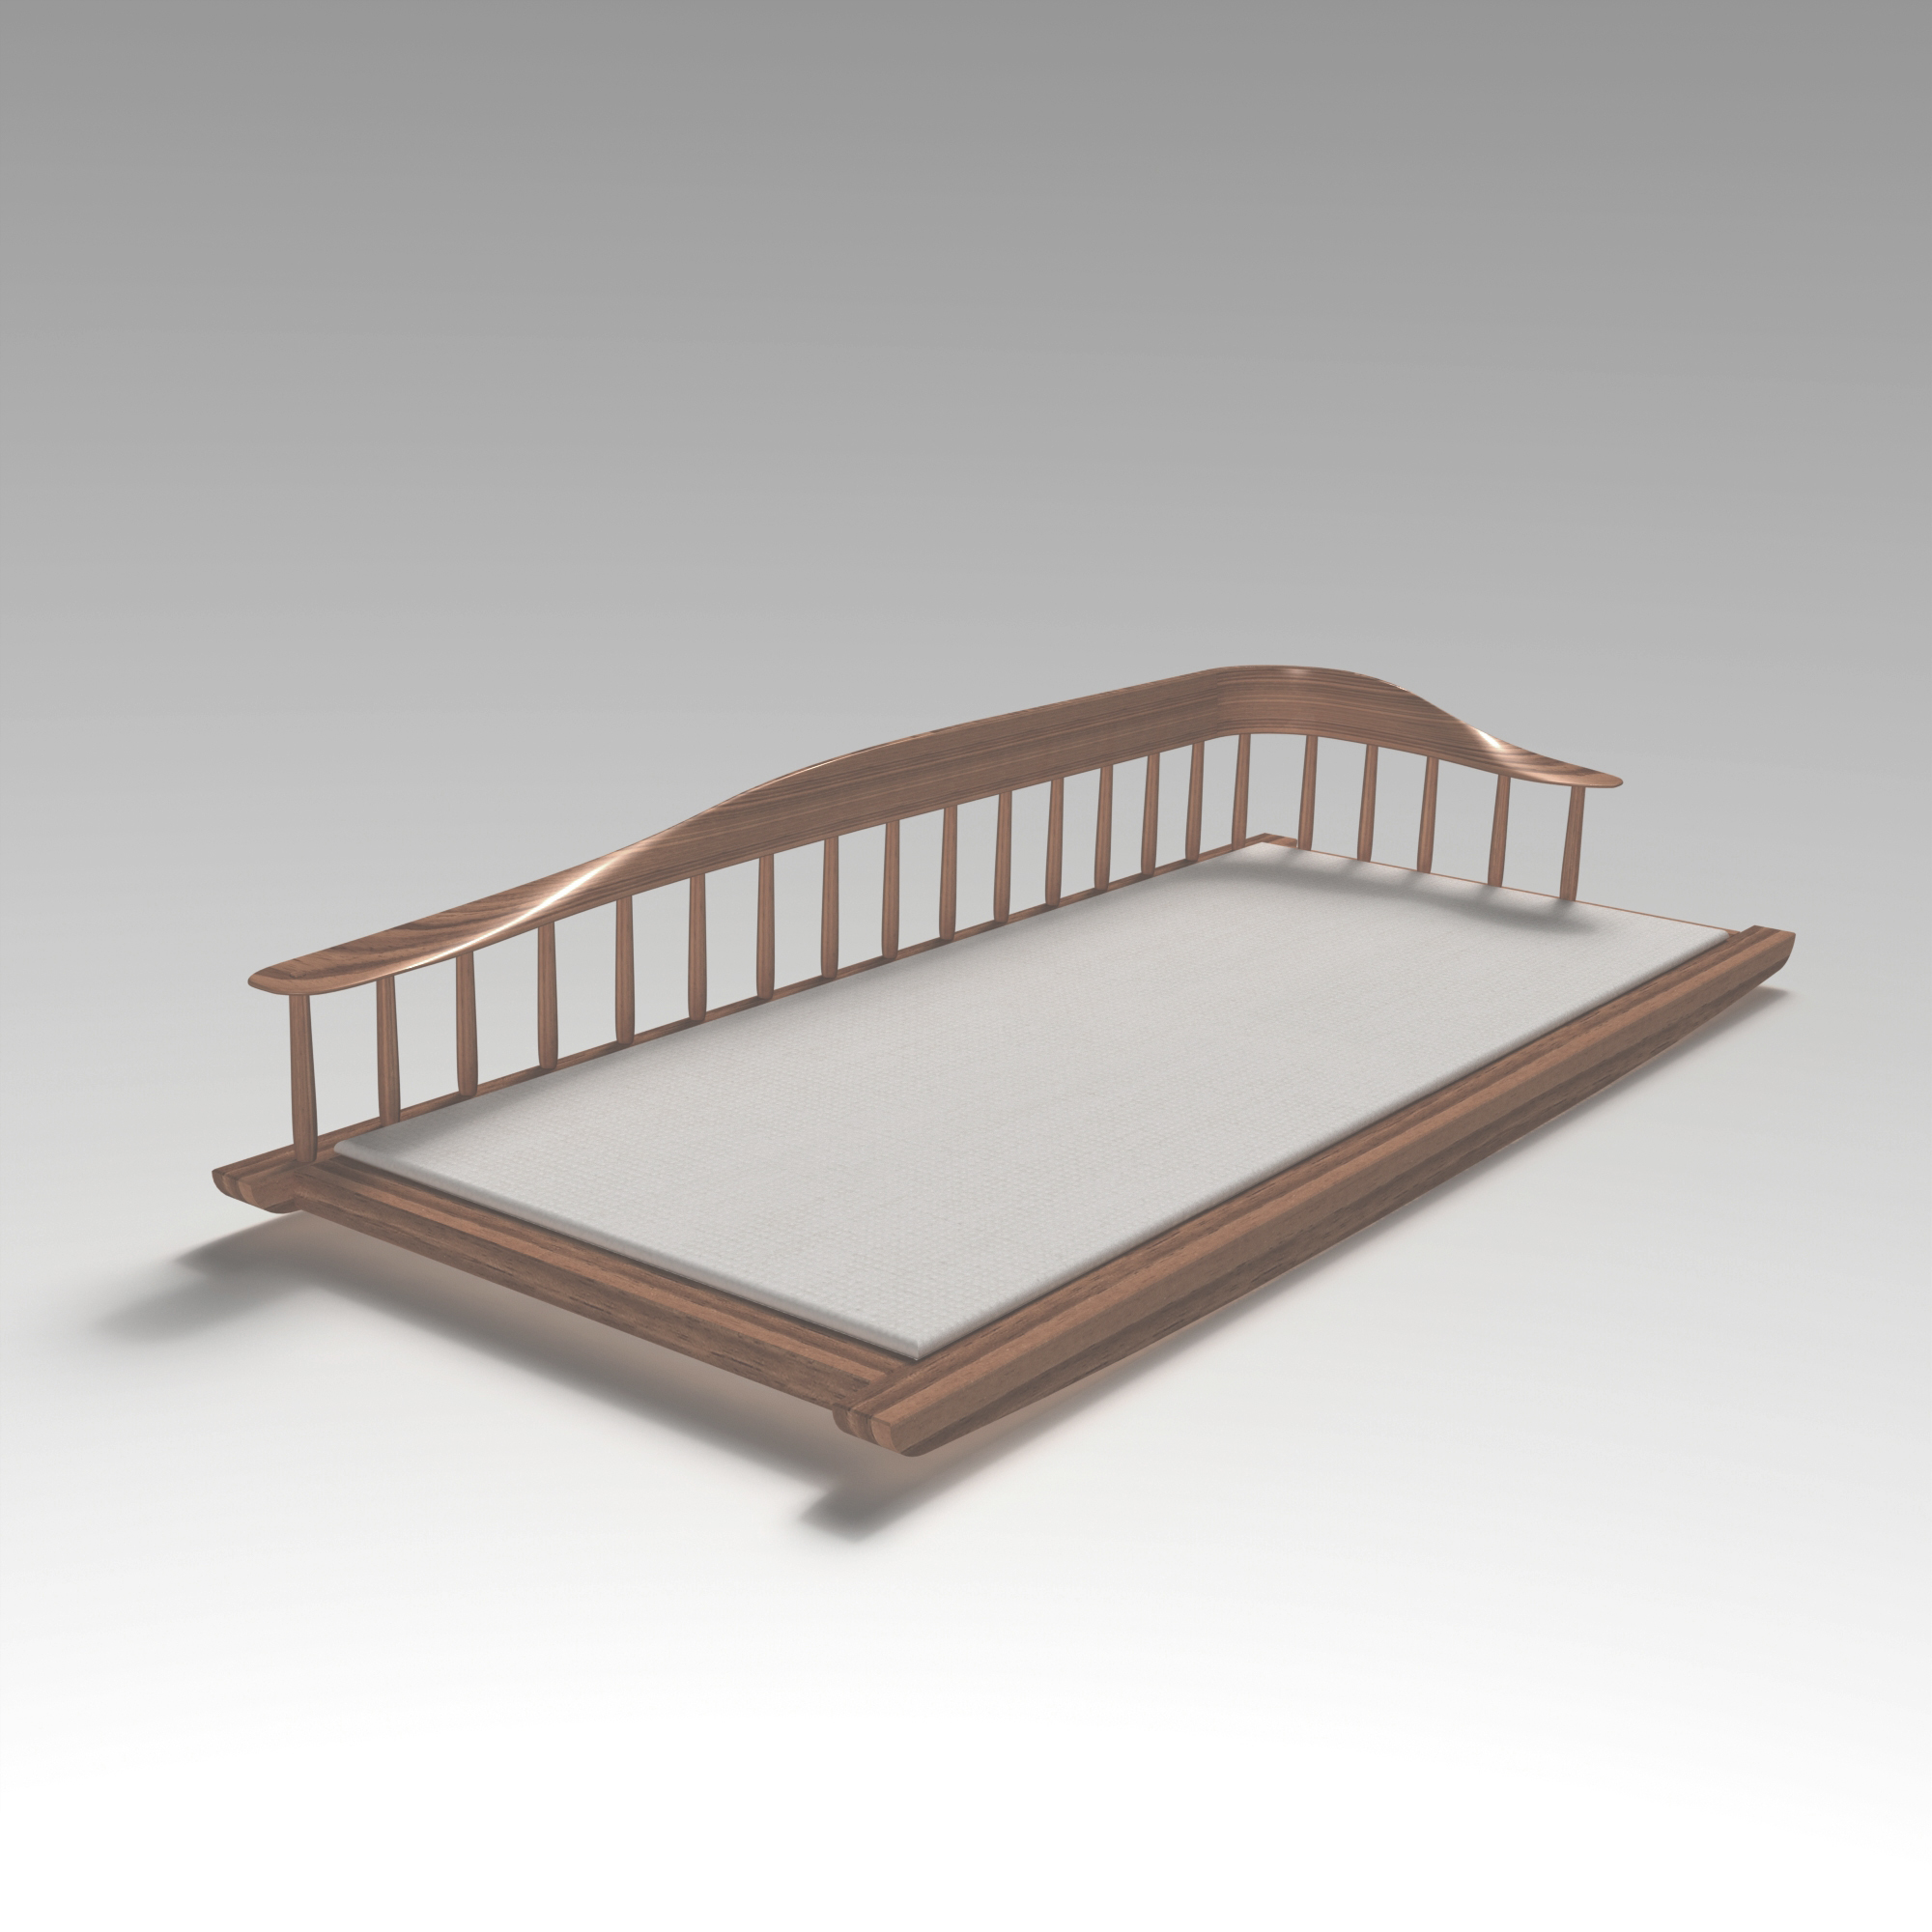 Day bed inspired by Japan and Småland, made in Solidworks, by Sebastian Galo